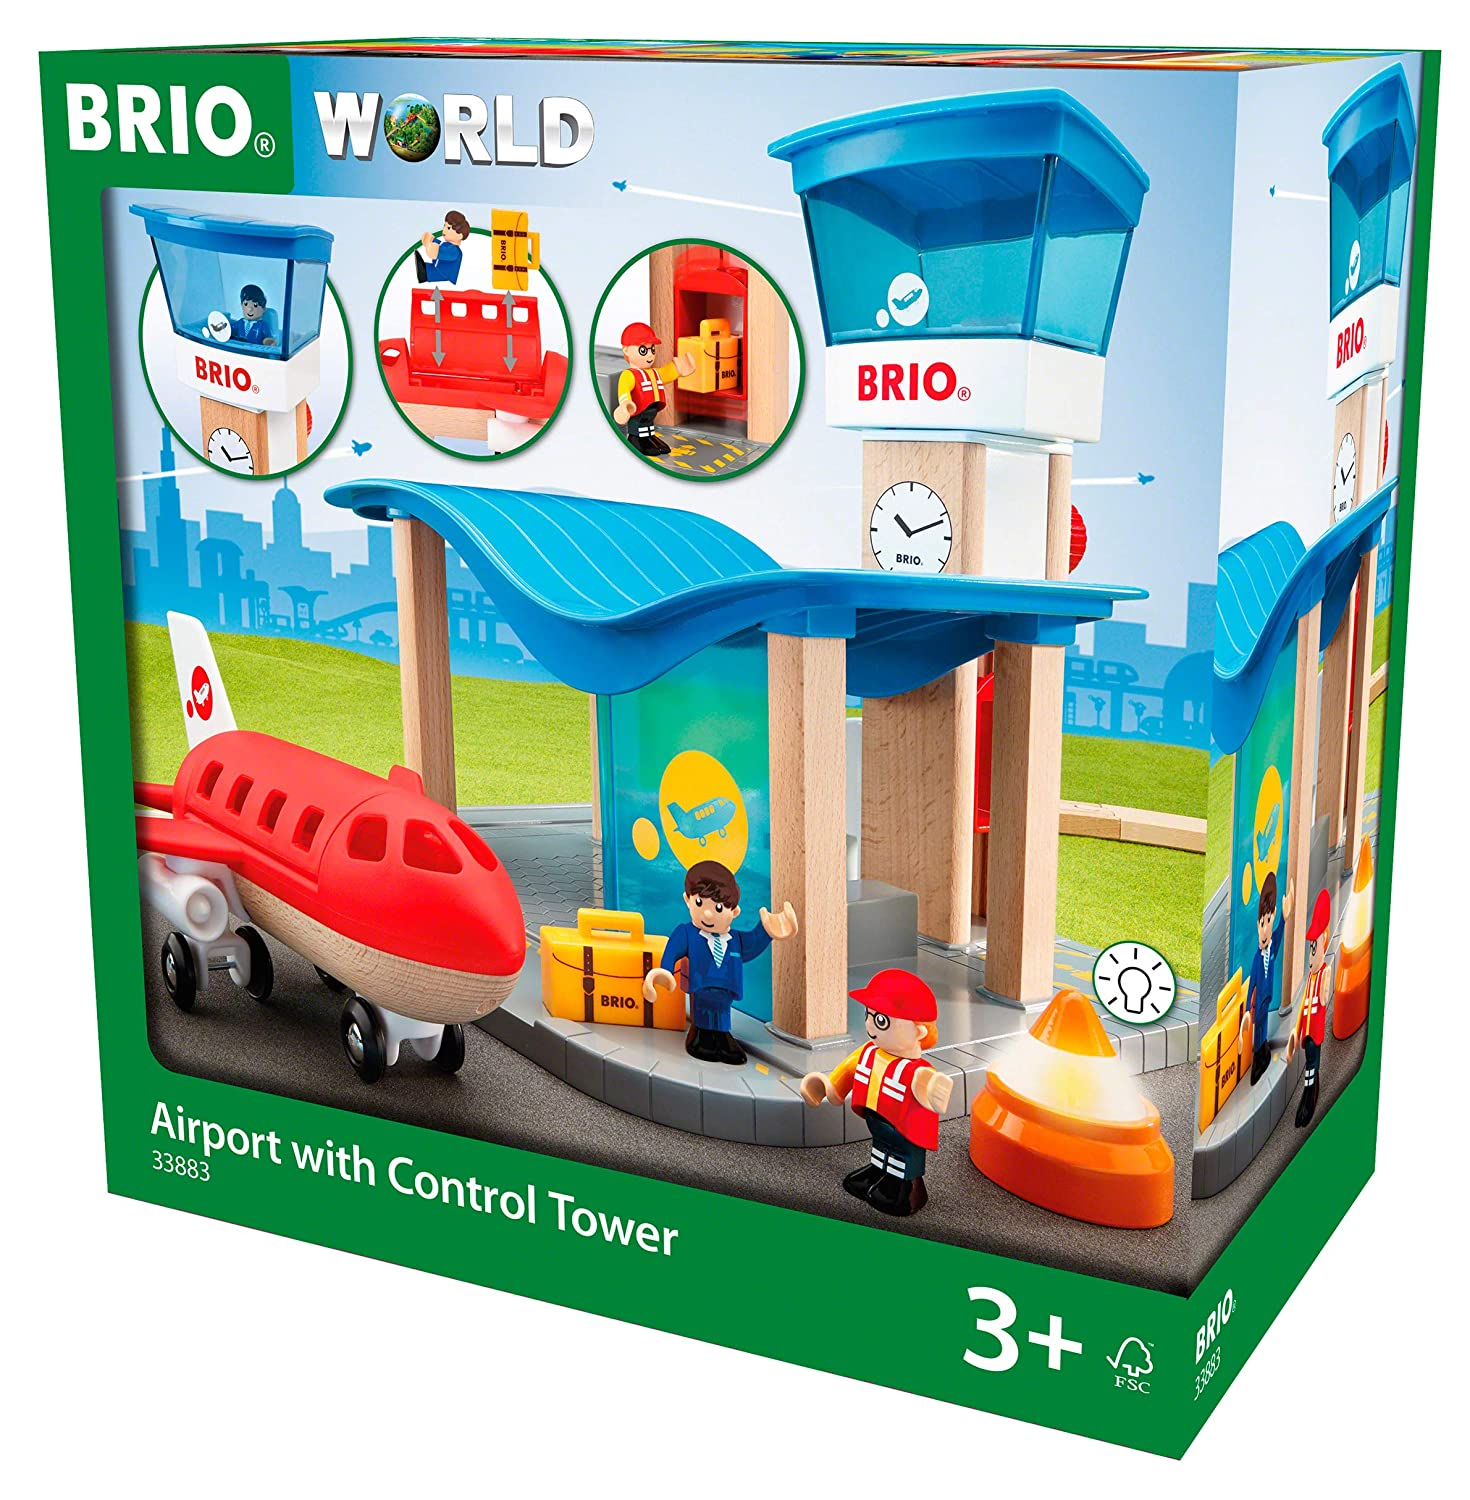 Brio World 33883 Airport With Control Tower Wooden Train Set Accessory Compatible With All Wooden Train Sets